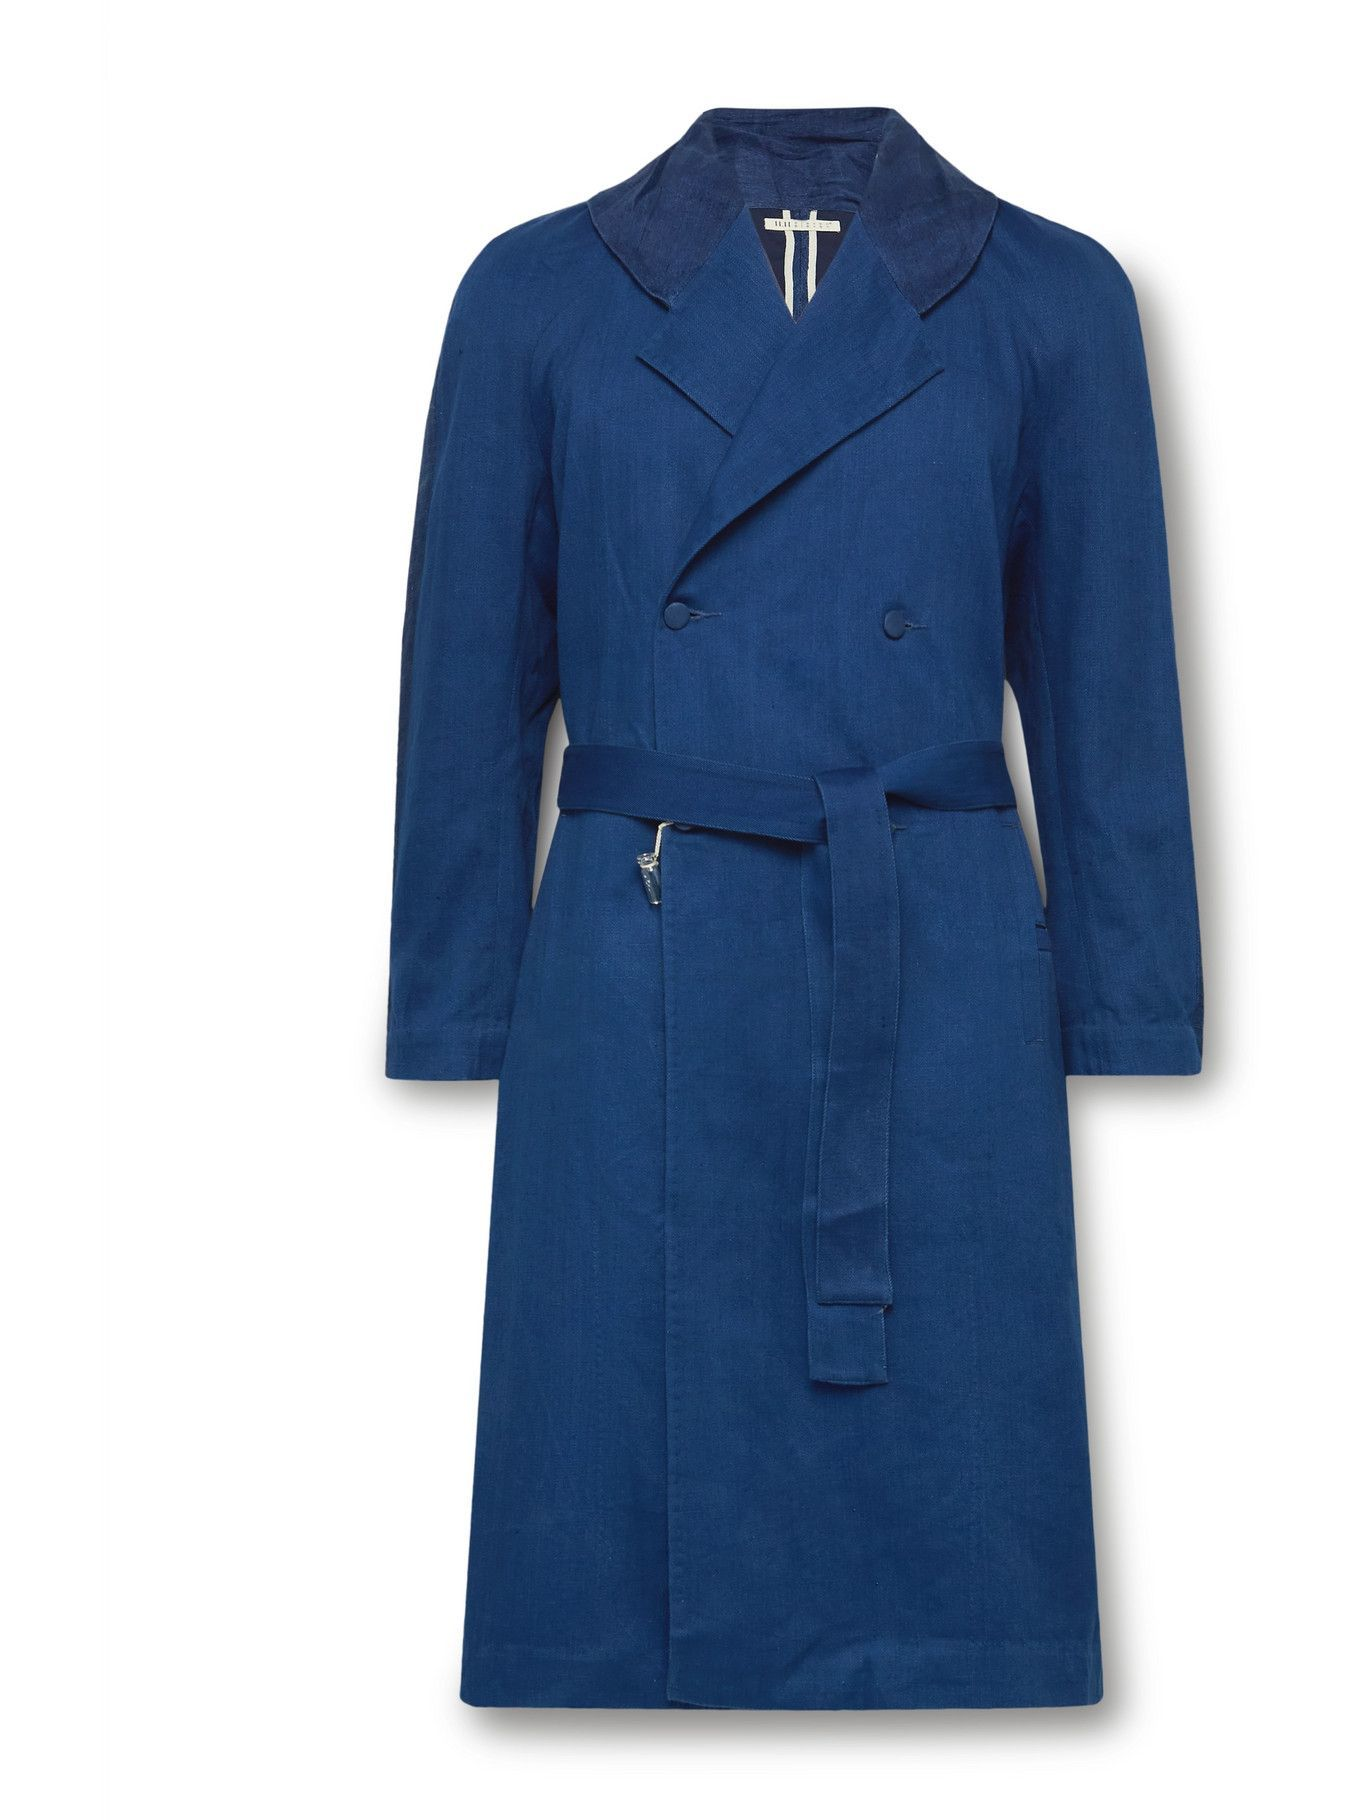 Photo: 11.11/eleven eleven - Indigo-Dyed Organic Linen and Cotton-Blend Trench Coat - Blue